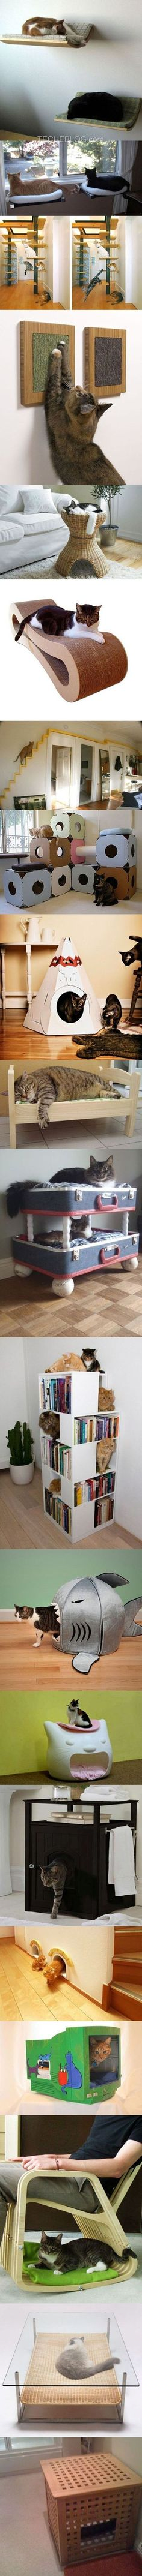 Here are twenty fun and geeky furniture designs for cats.